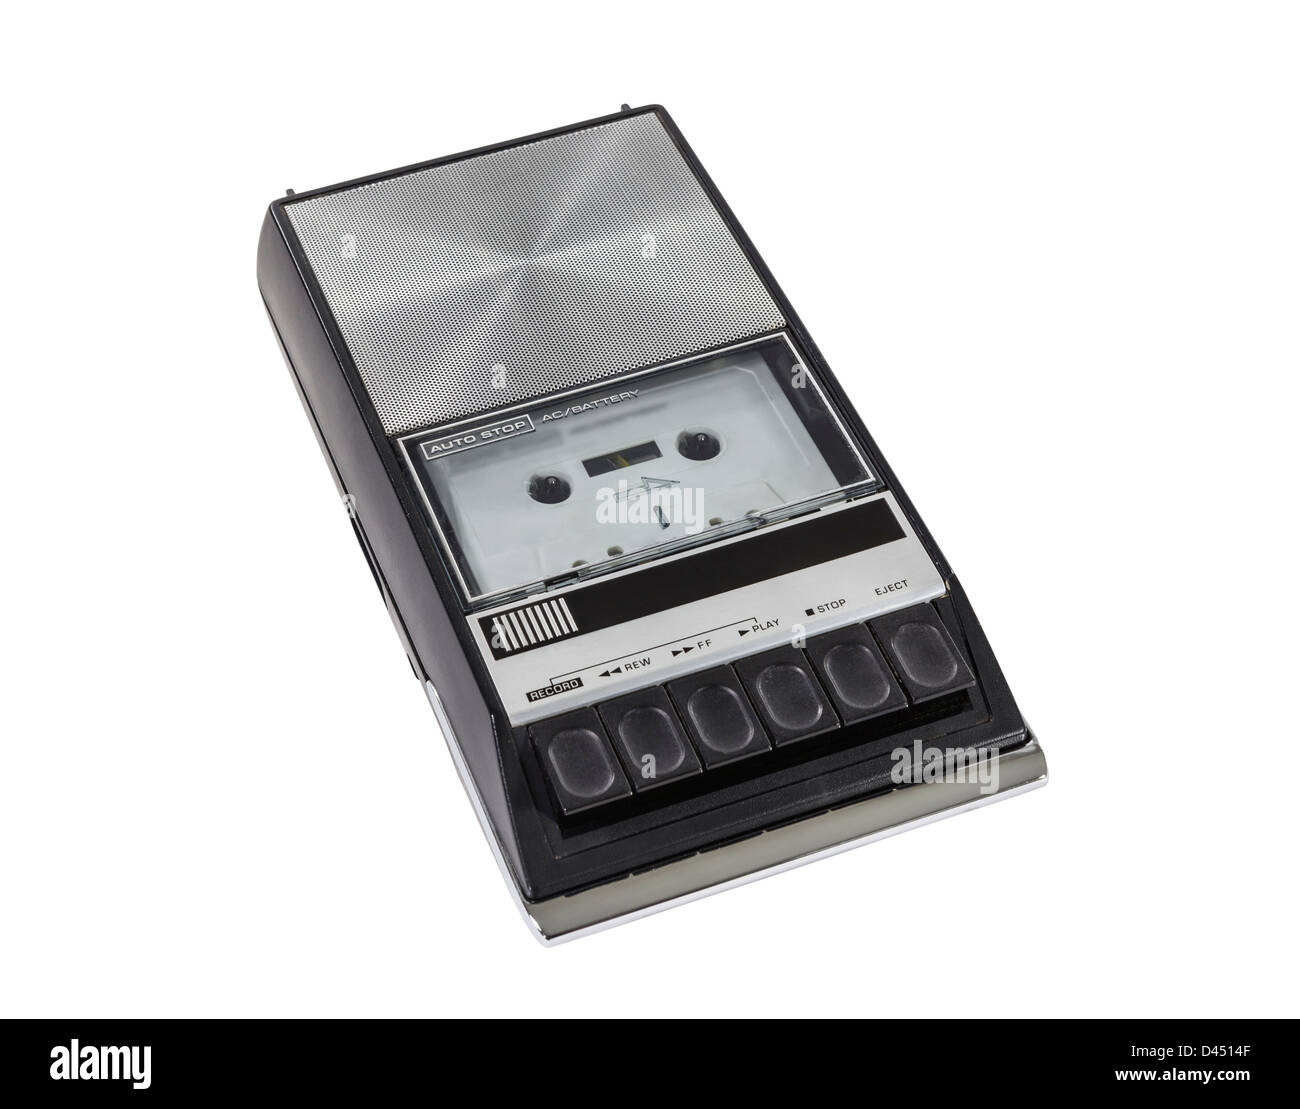 Vintage portable cassette tape player and recorder. - Stock Image